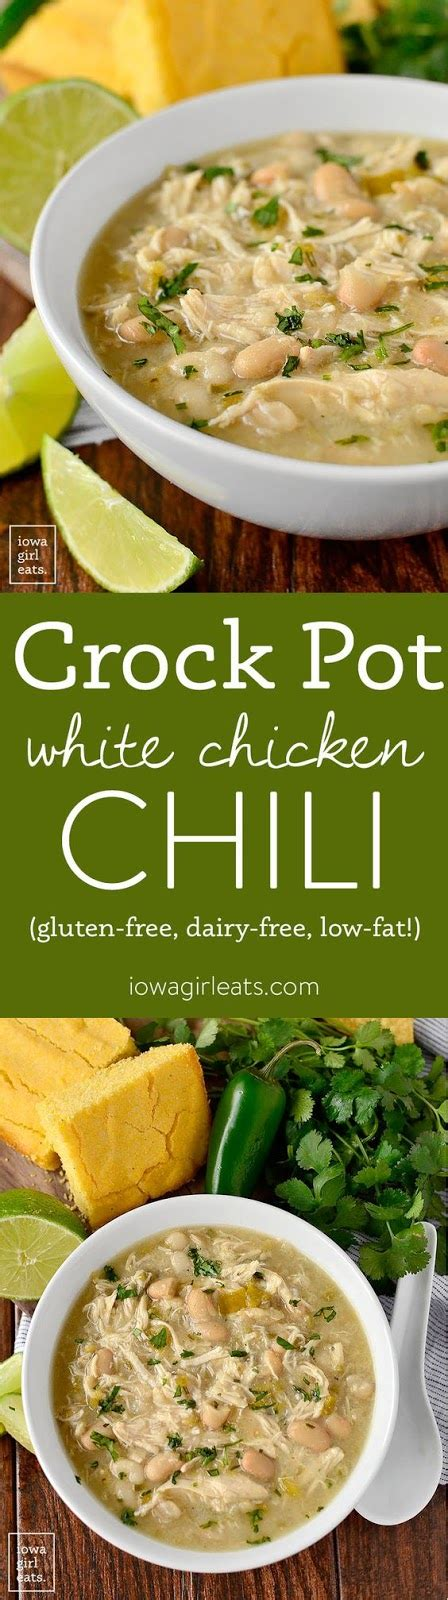 The fattier the meat is, the more cholesterol it contains. Crock Pot White Chicken Chili - Cucina de Yung